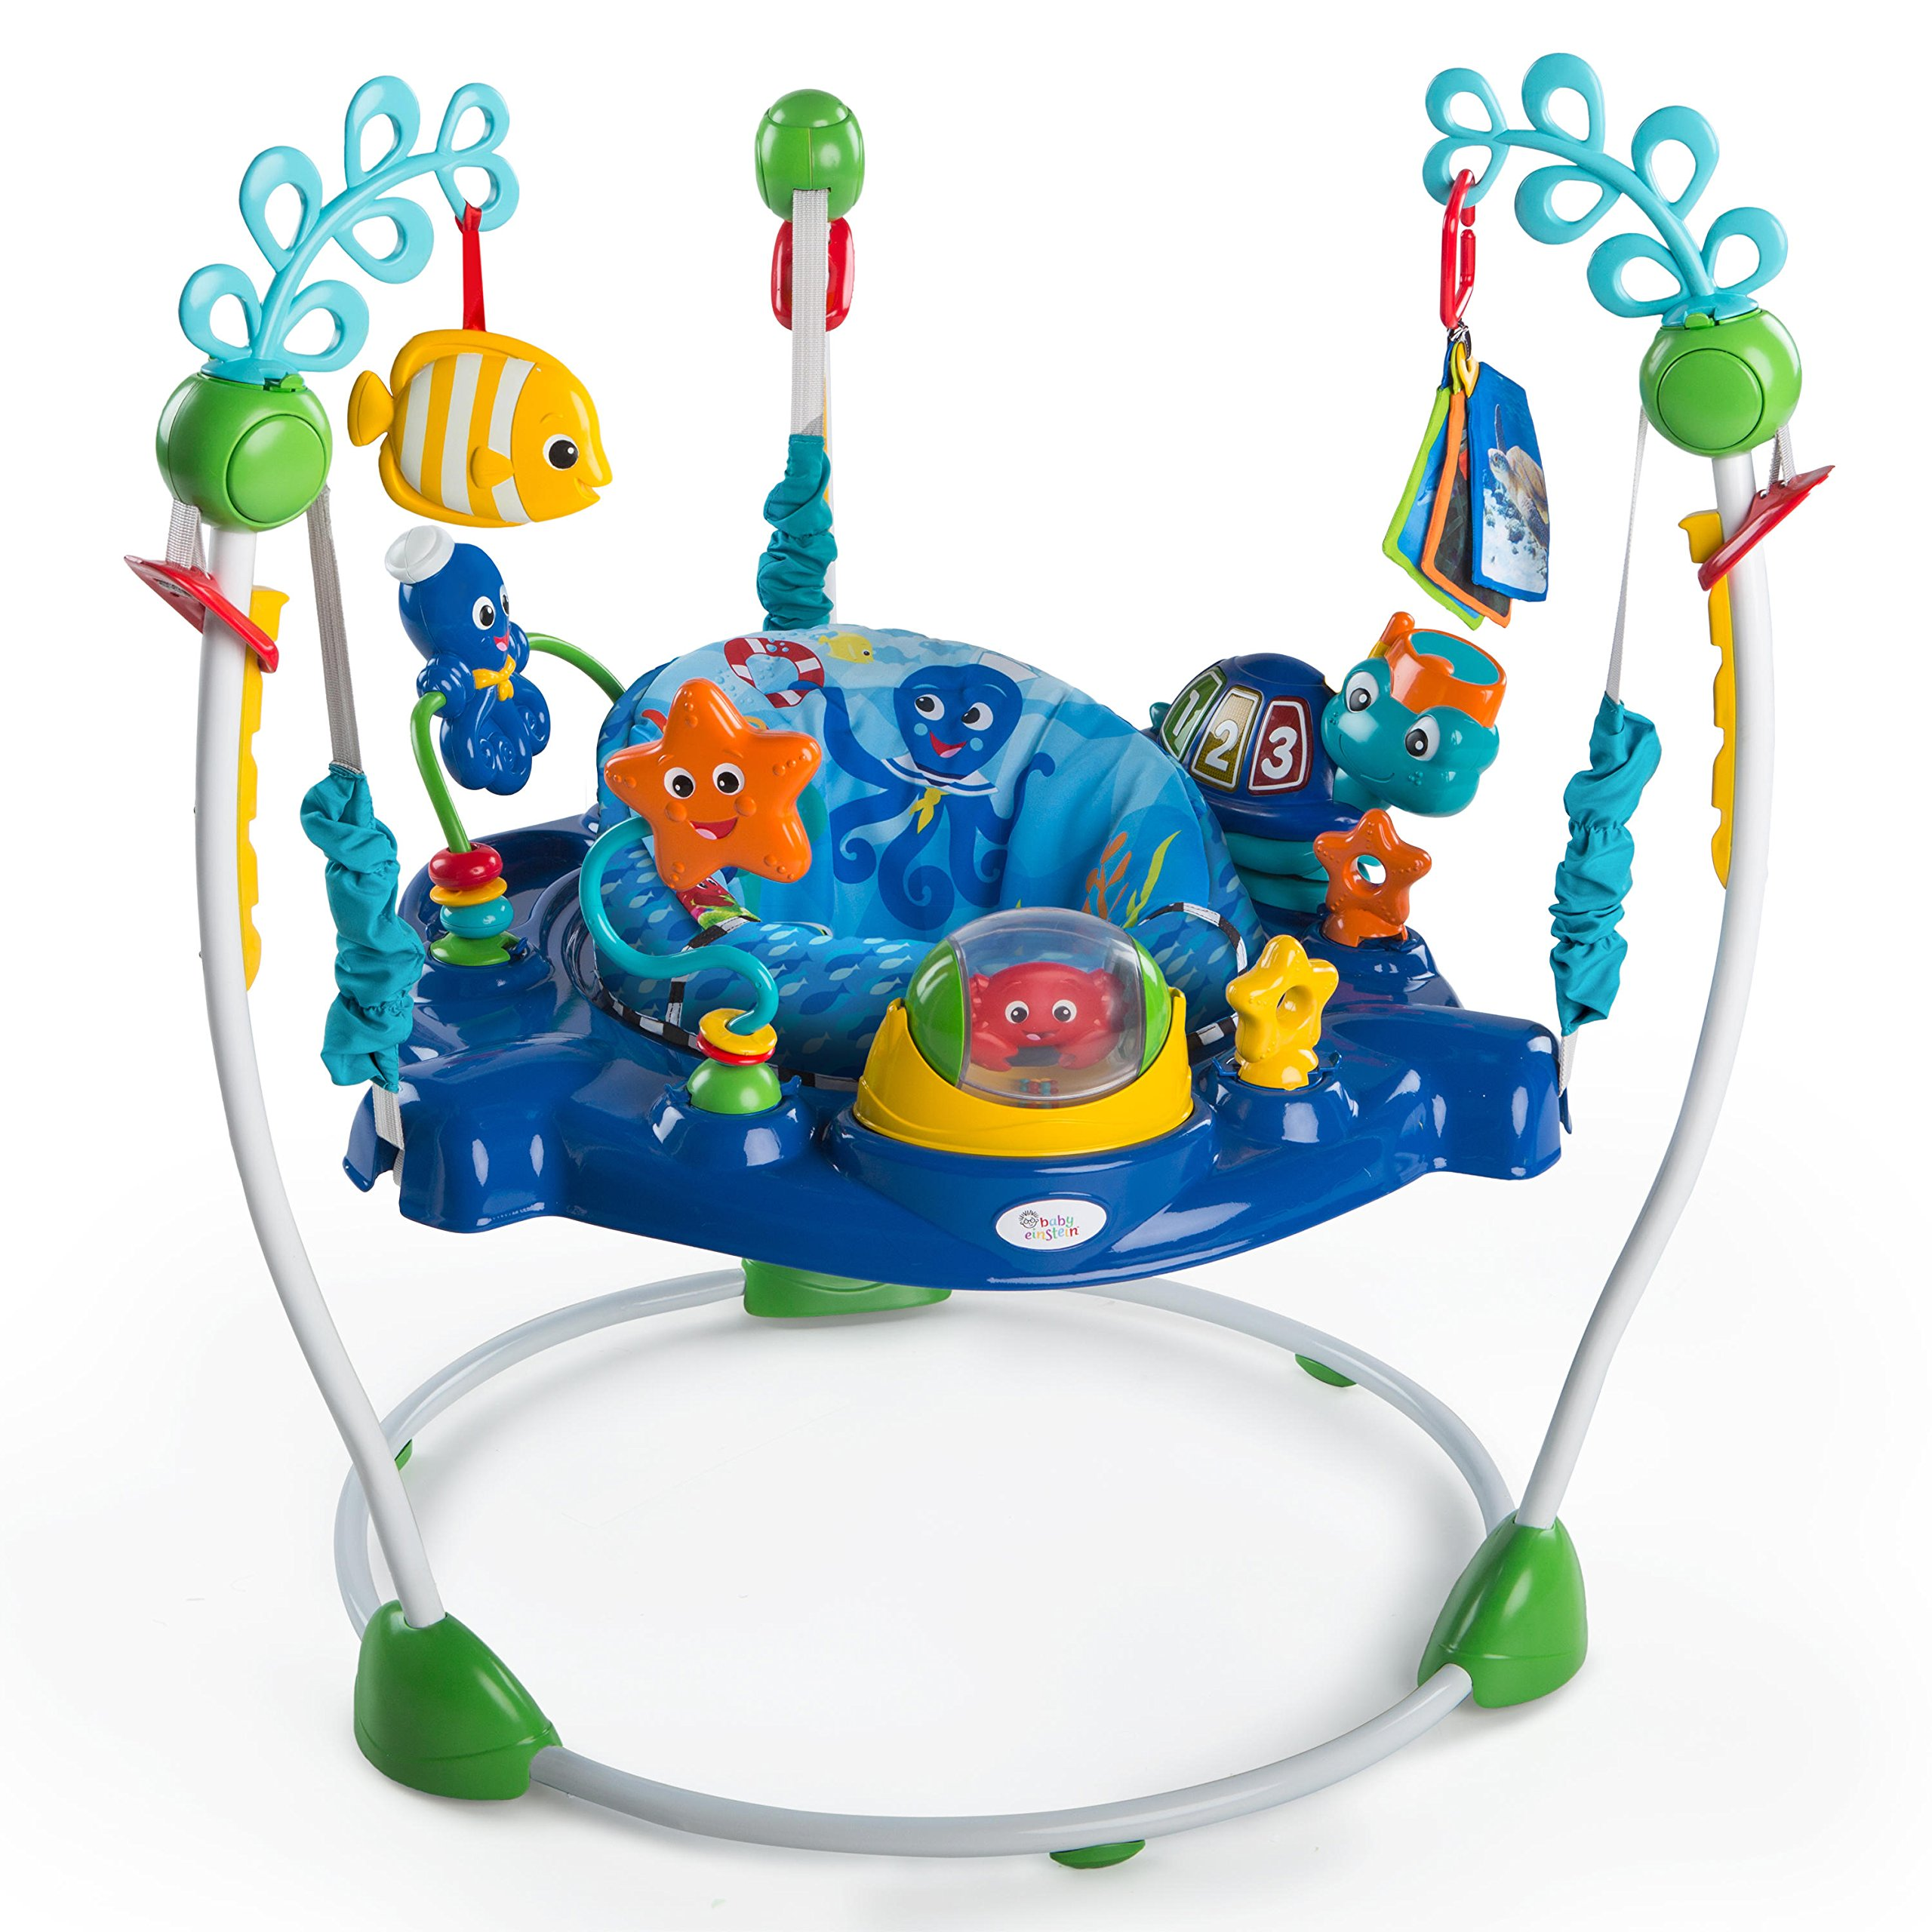 Baby Einstein Neptunes Ocean Discovery Jumperoo Stroller Cocolatte Isport 9m Be9 91brb8oibl Sx522 91unldbz3ll